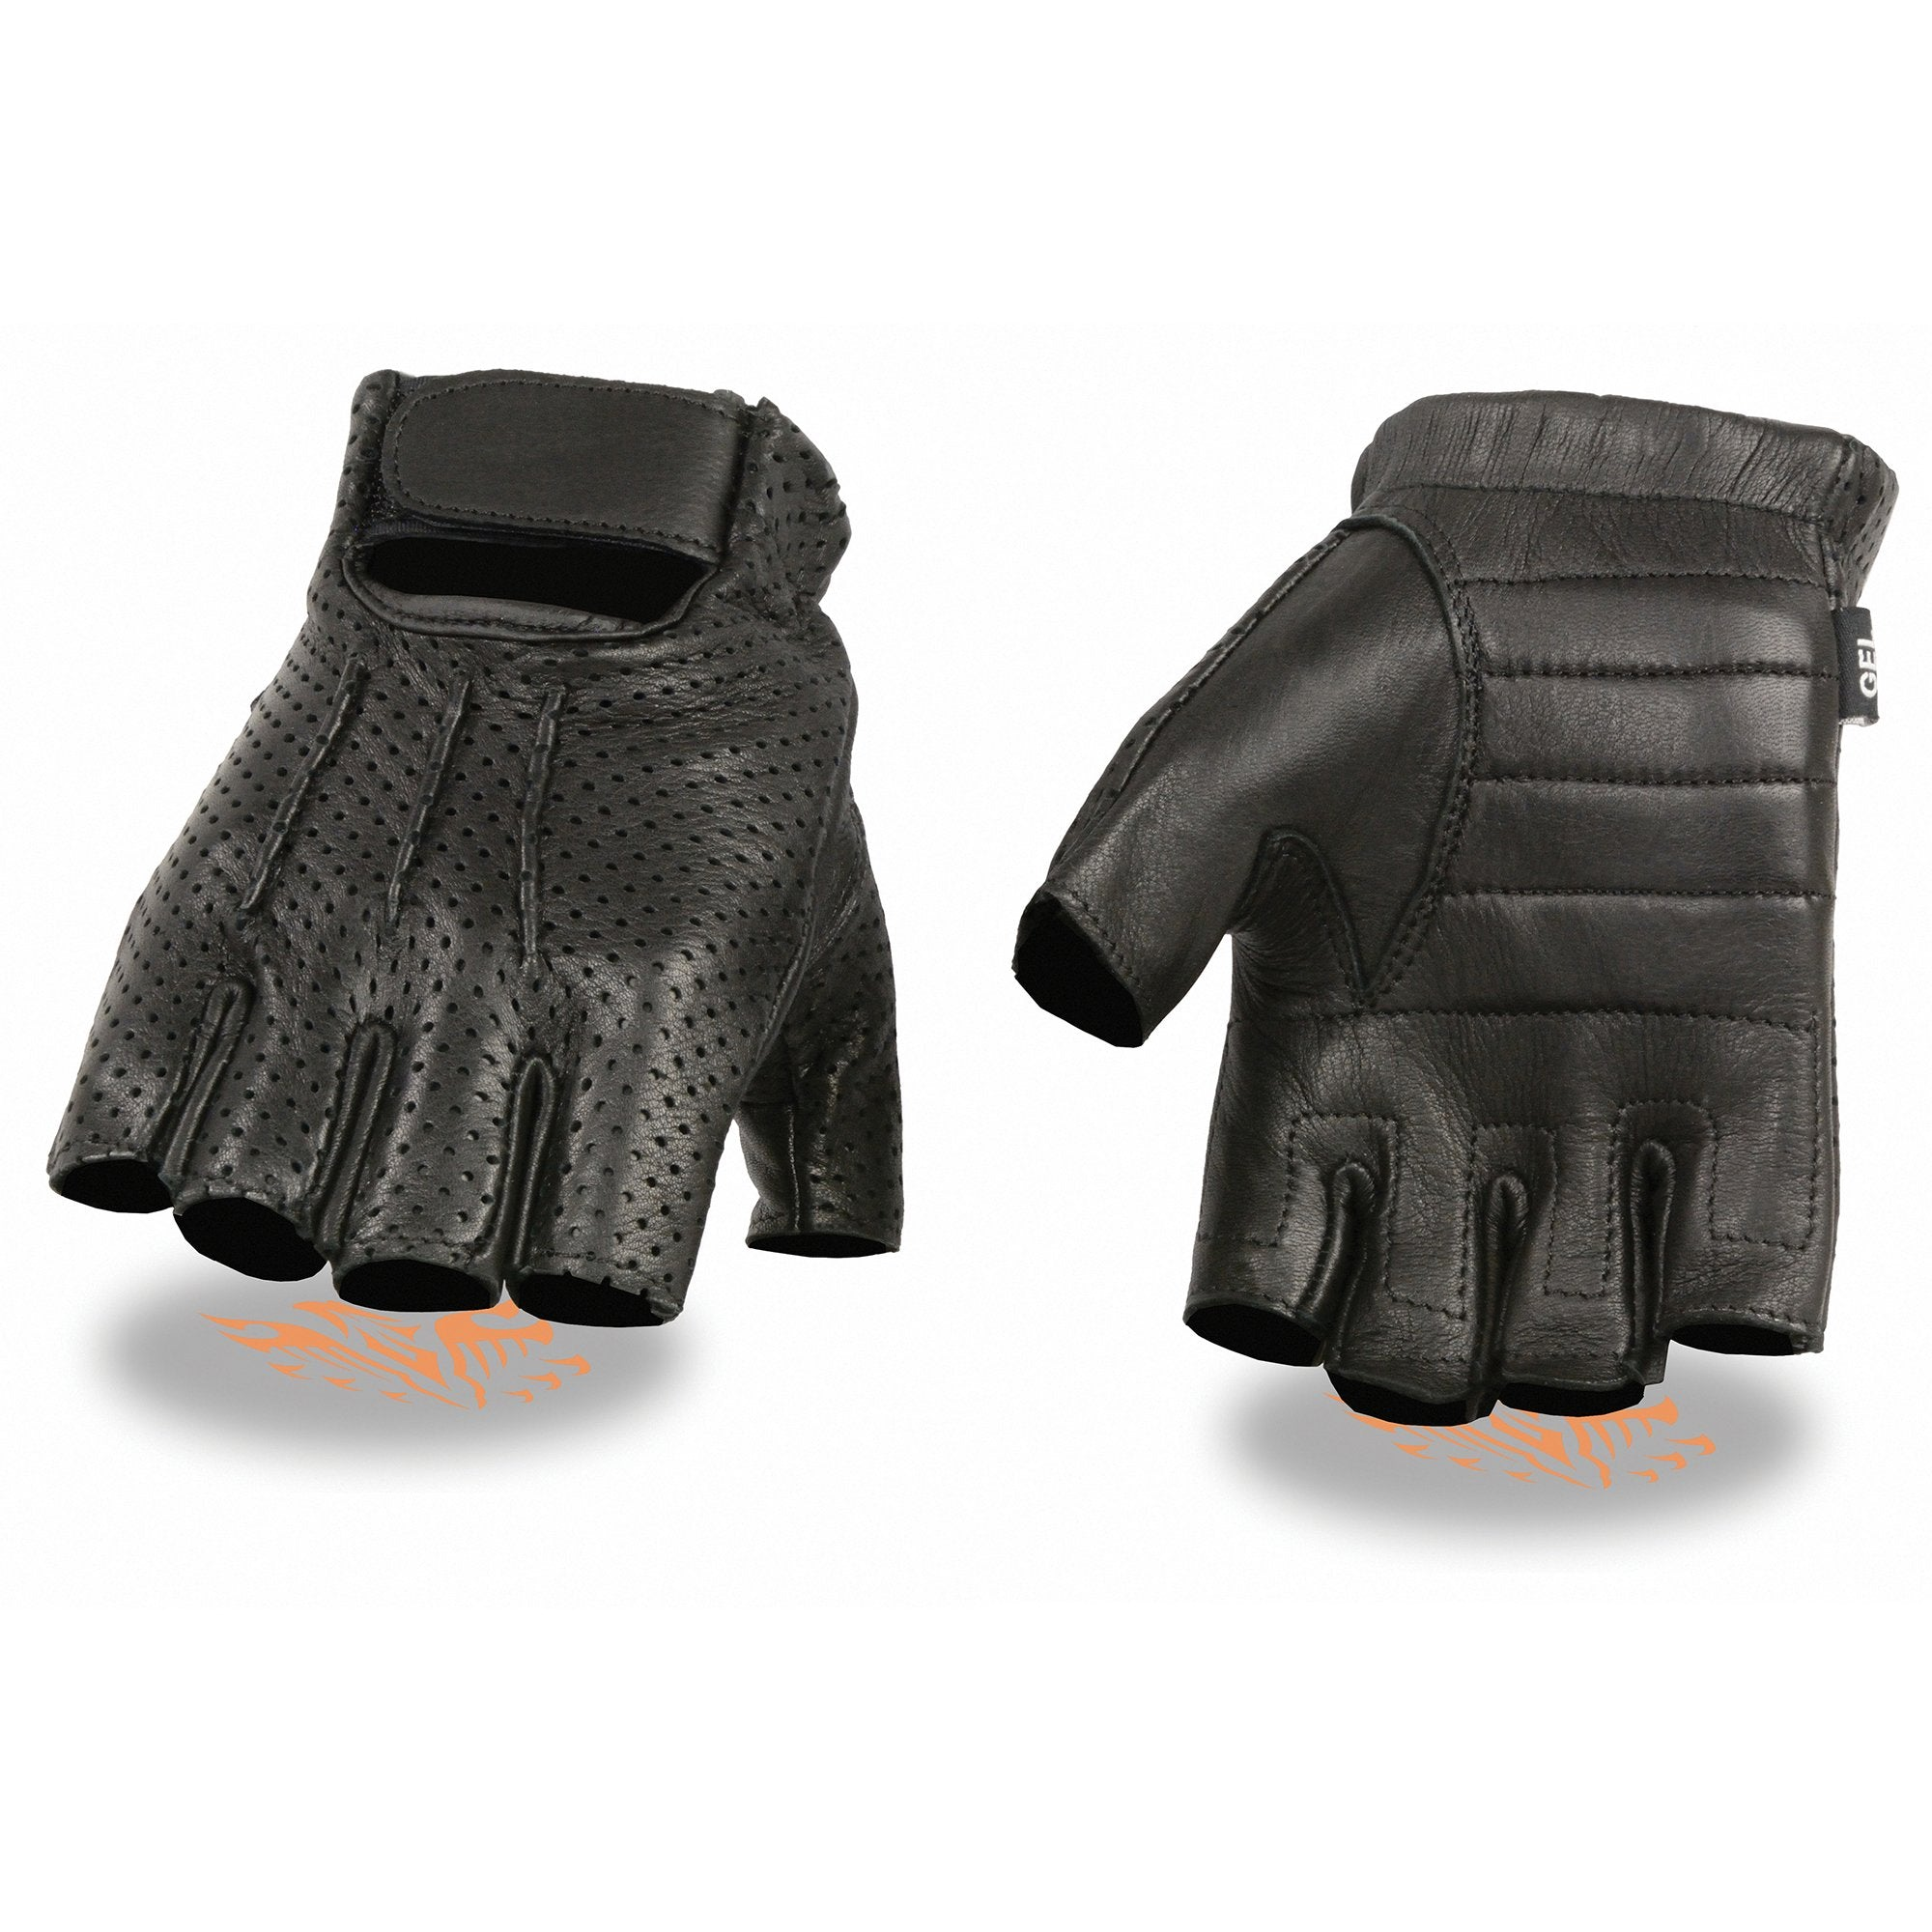 Milwaukee Leather SH877 Men's Perforated Deerskin Fingerless Gloves with Gel Palm